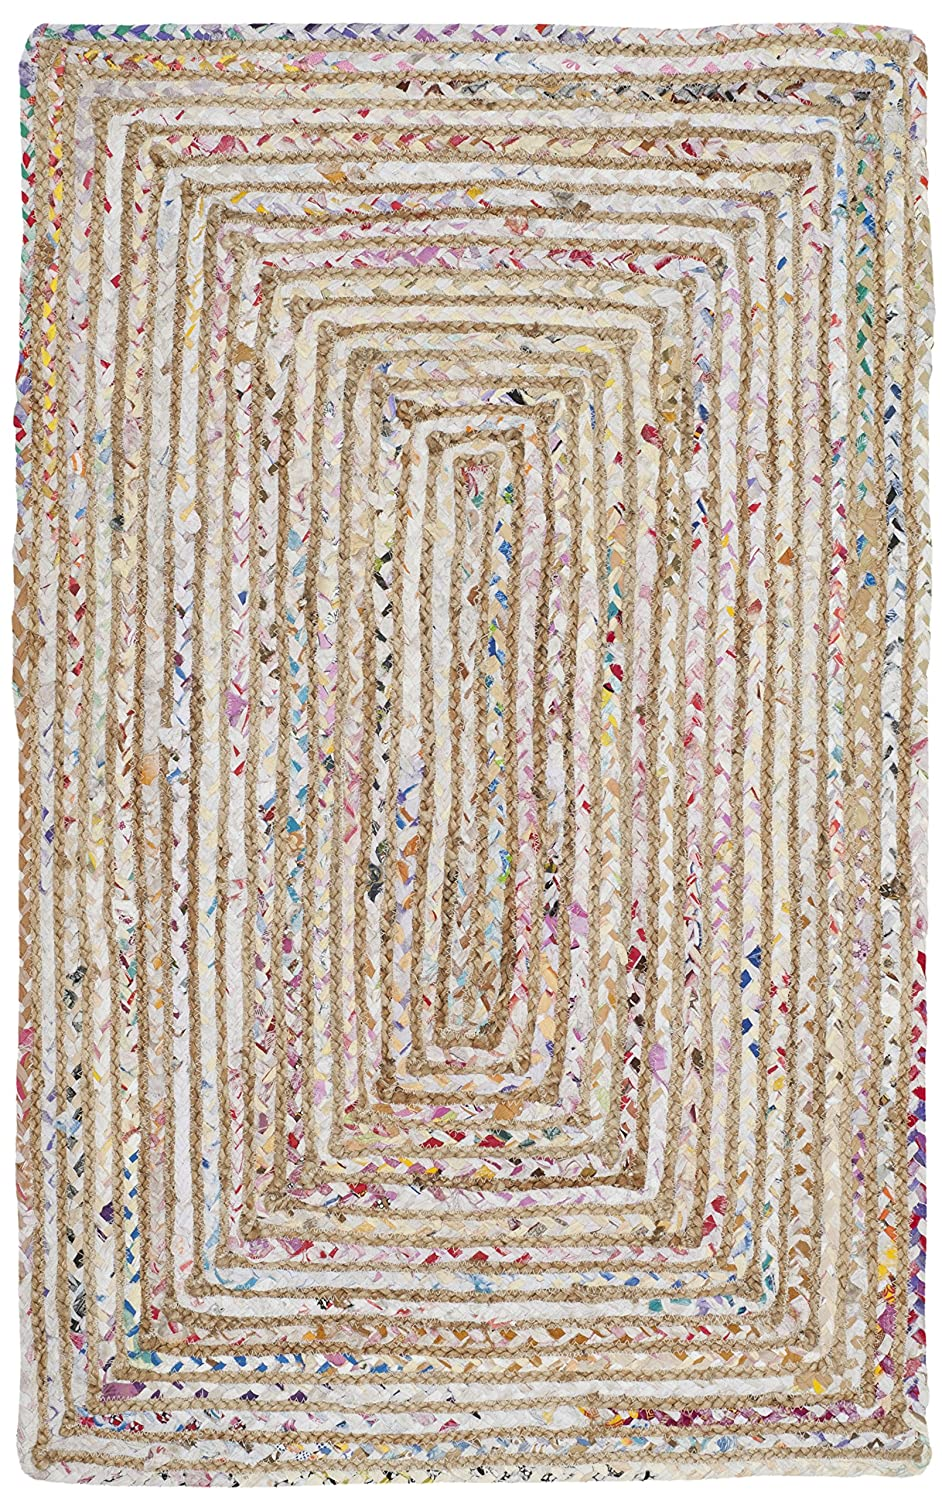 Safavieh Cape Cod Collection CAP202B Handmade Beige and Multicolored Jute Area Rug (2' x 3')